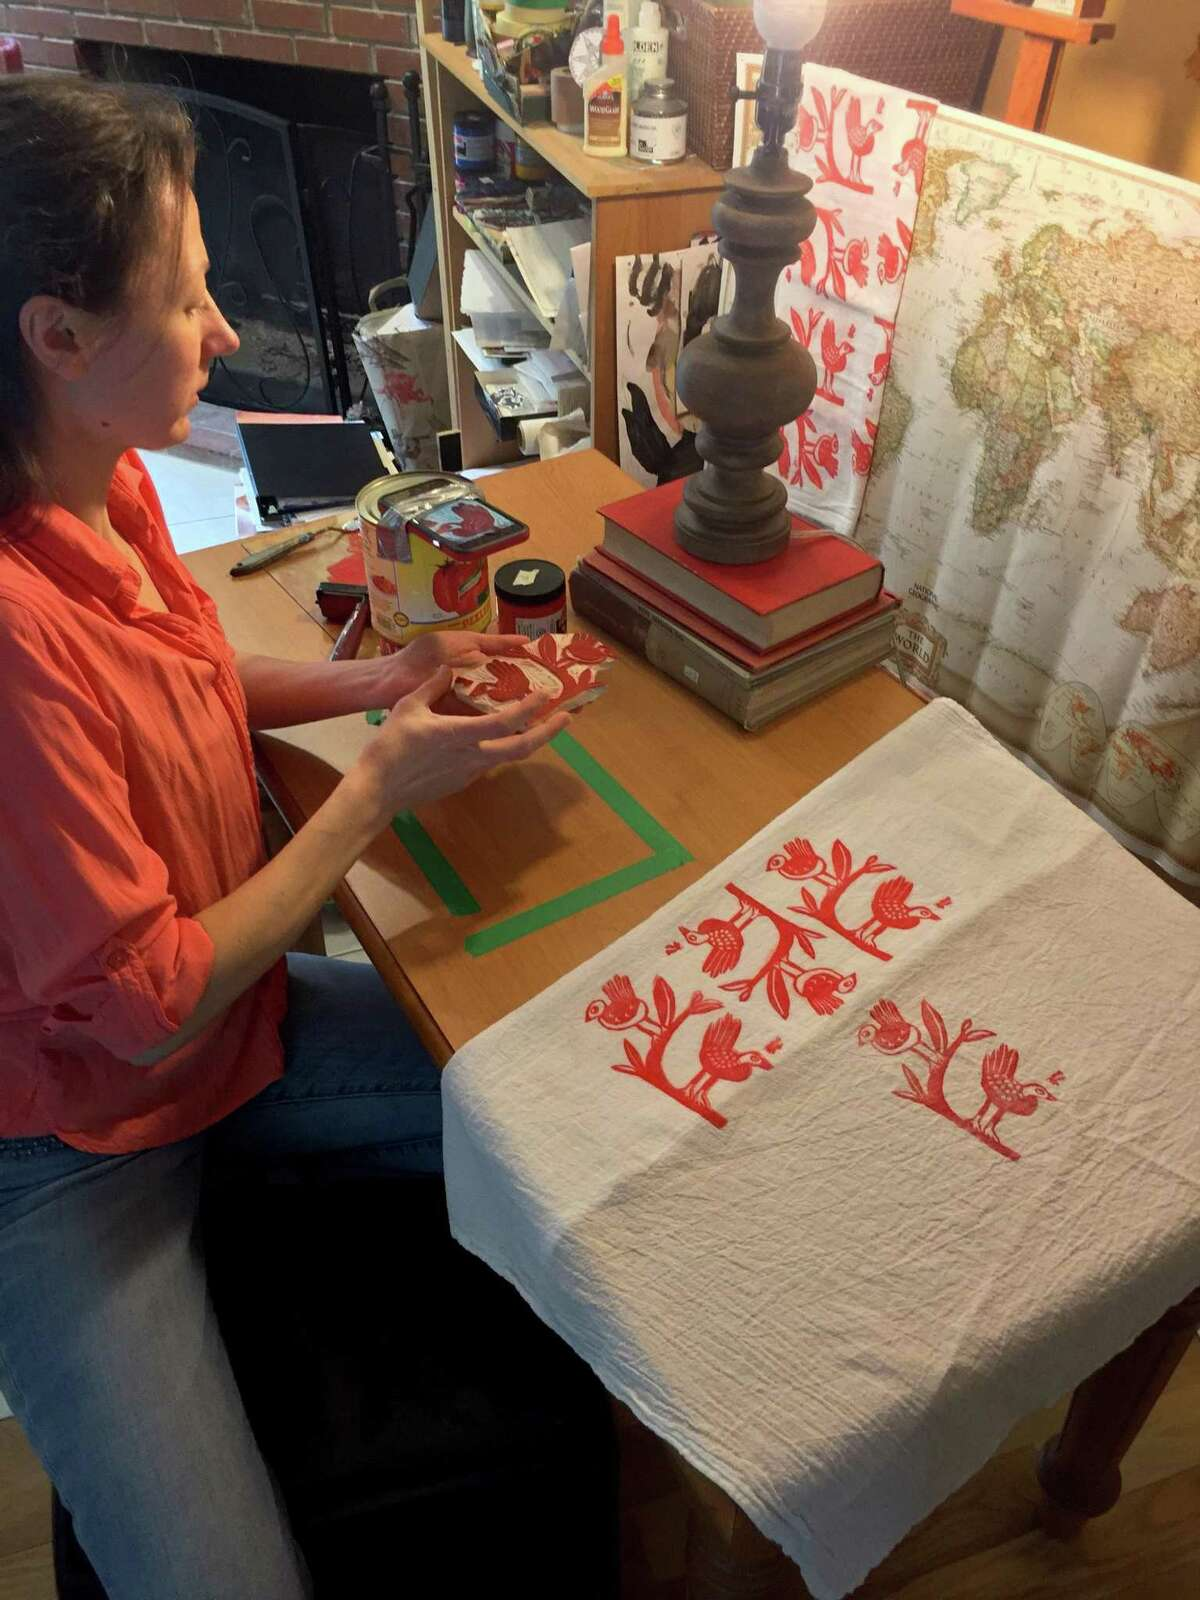 Karin Mansberg, of Bethel, records an instructional video for the beginner block printing class she'll be teaching online through Brookfield Craft Center. She stacked two cans to hold her iPhone, then taped it to the top can to record how she prints on tea towels.